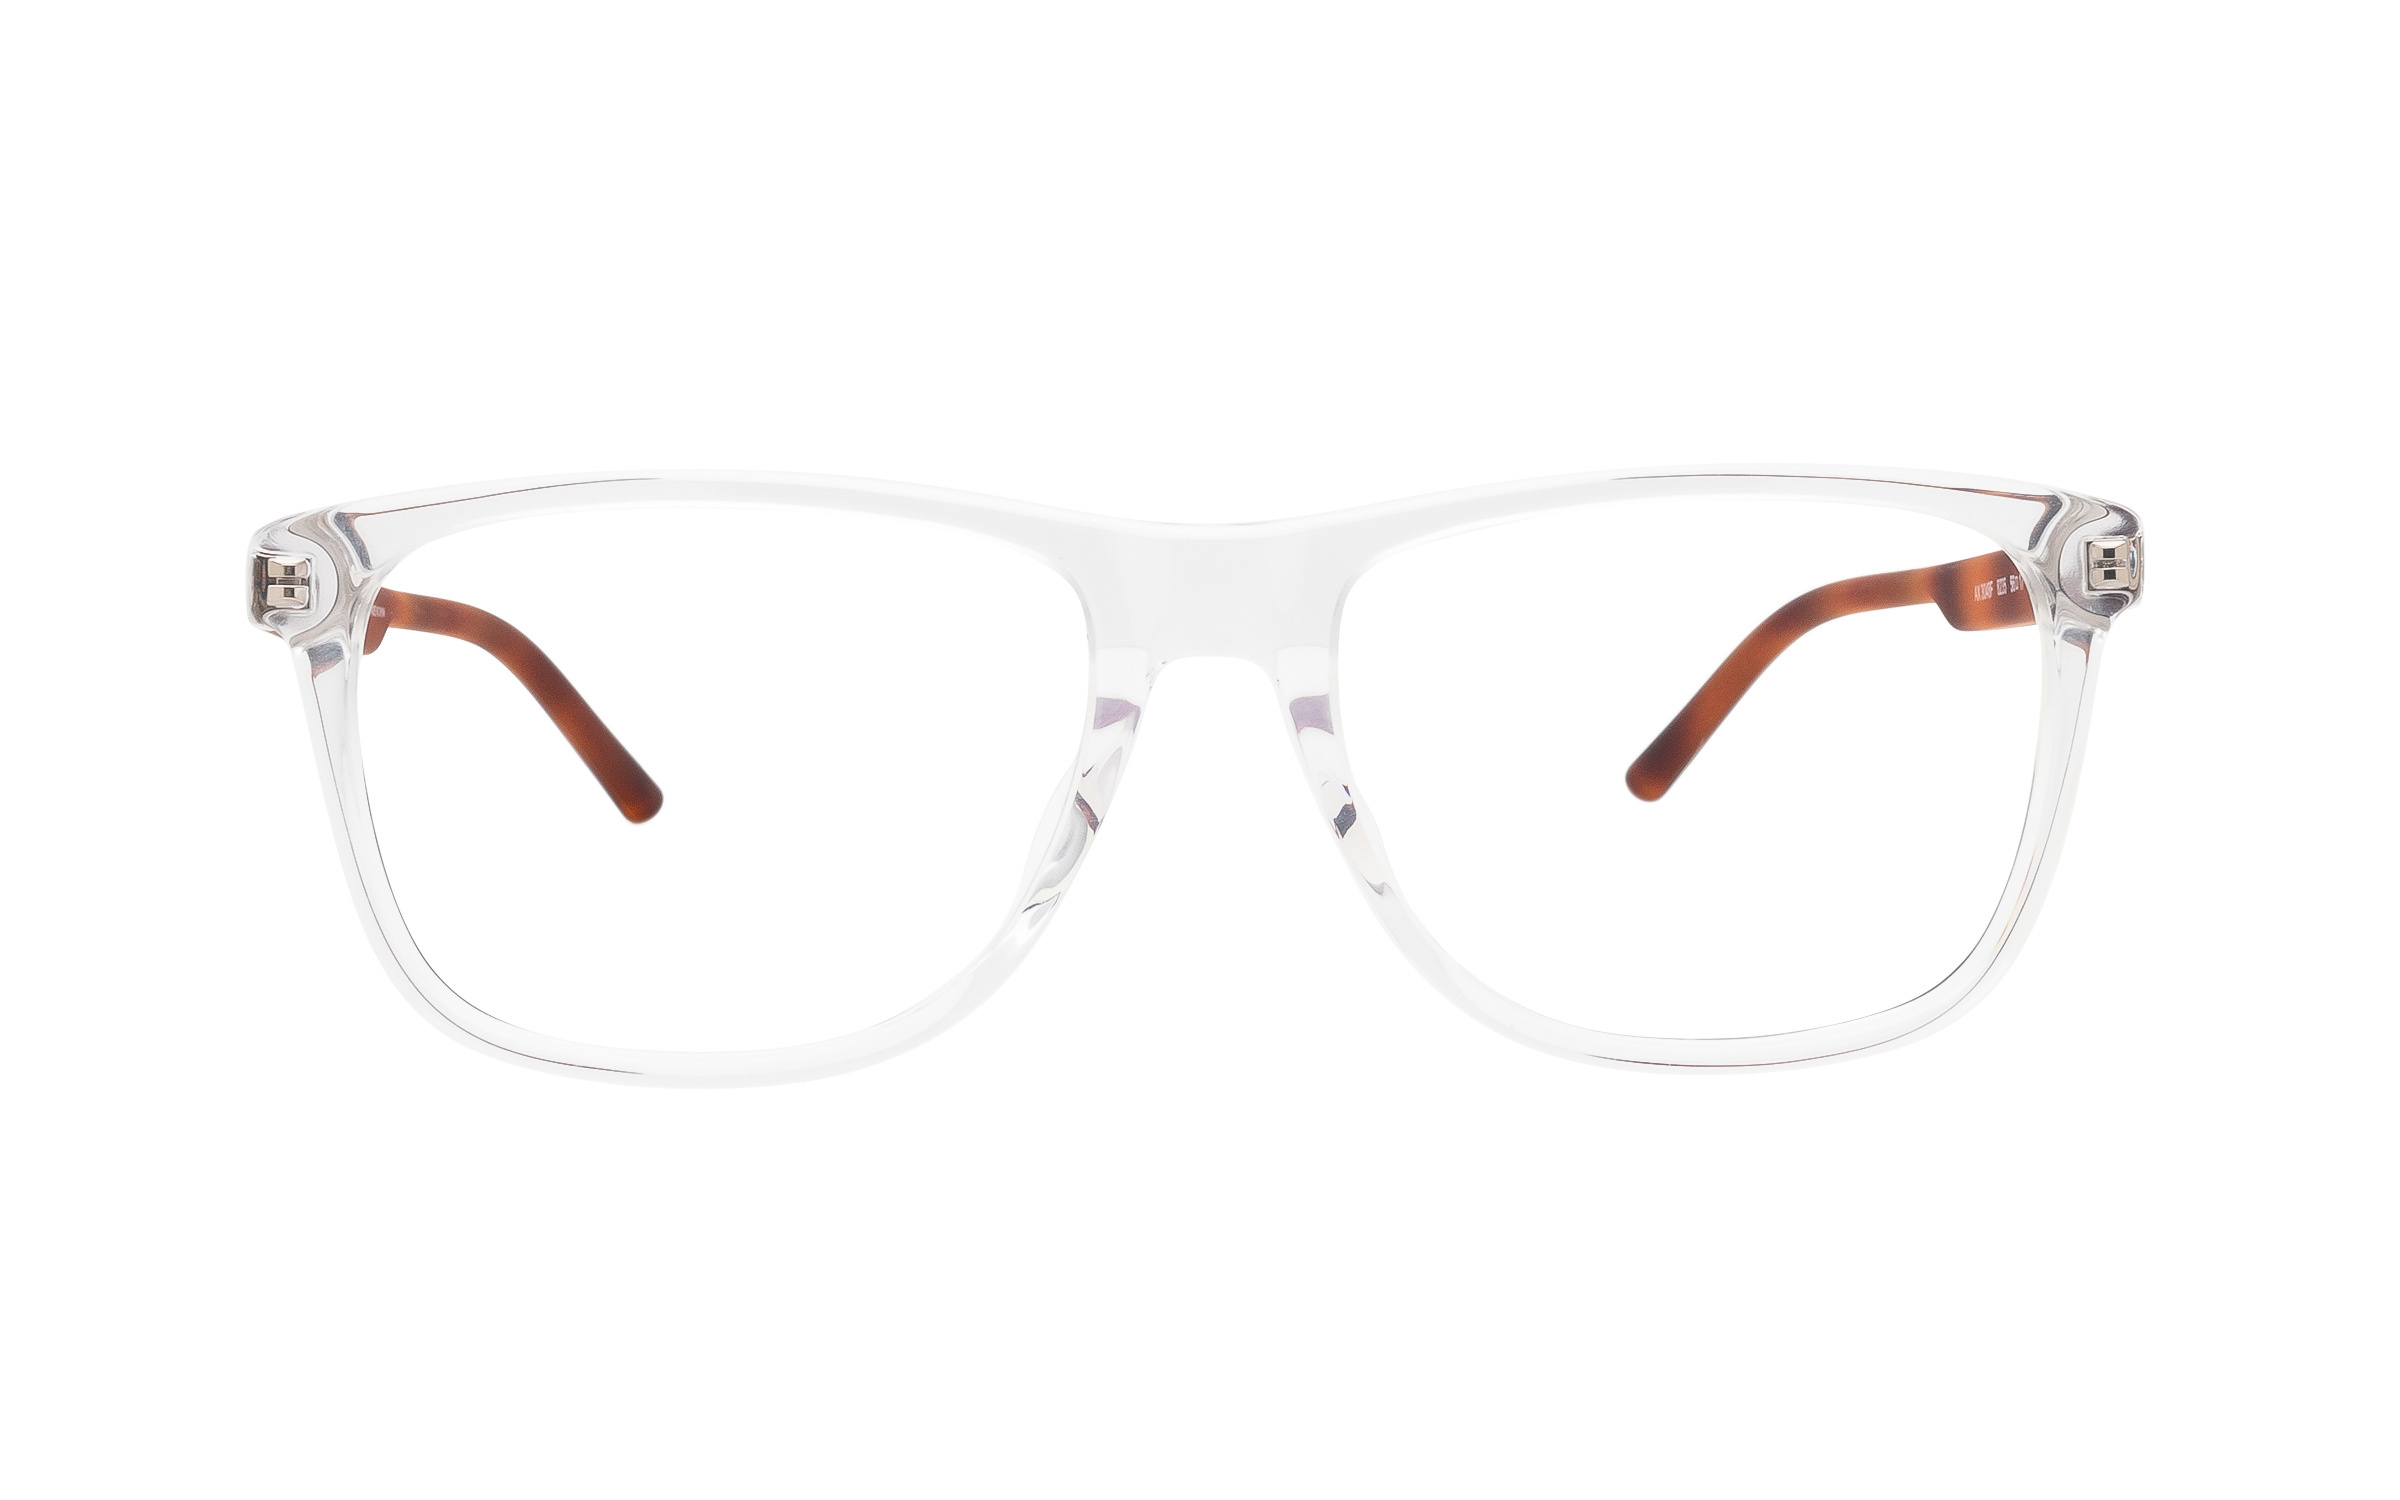 http://www.coastal.com/ - Armani Exchange AX3048F 8235 (56) Eyeglasses and Frame in Shiny Crystal Clear – Online Coastal